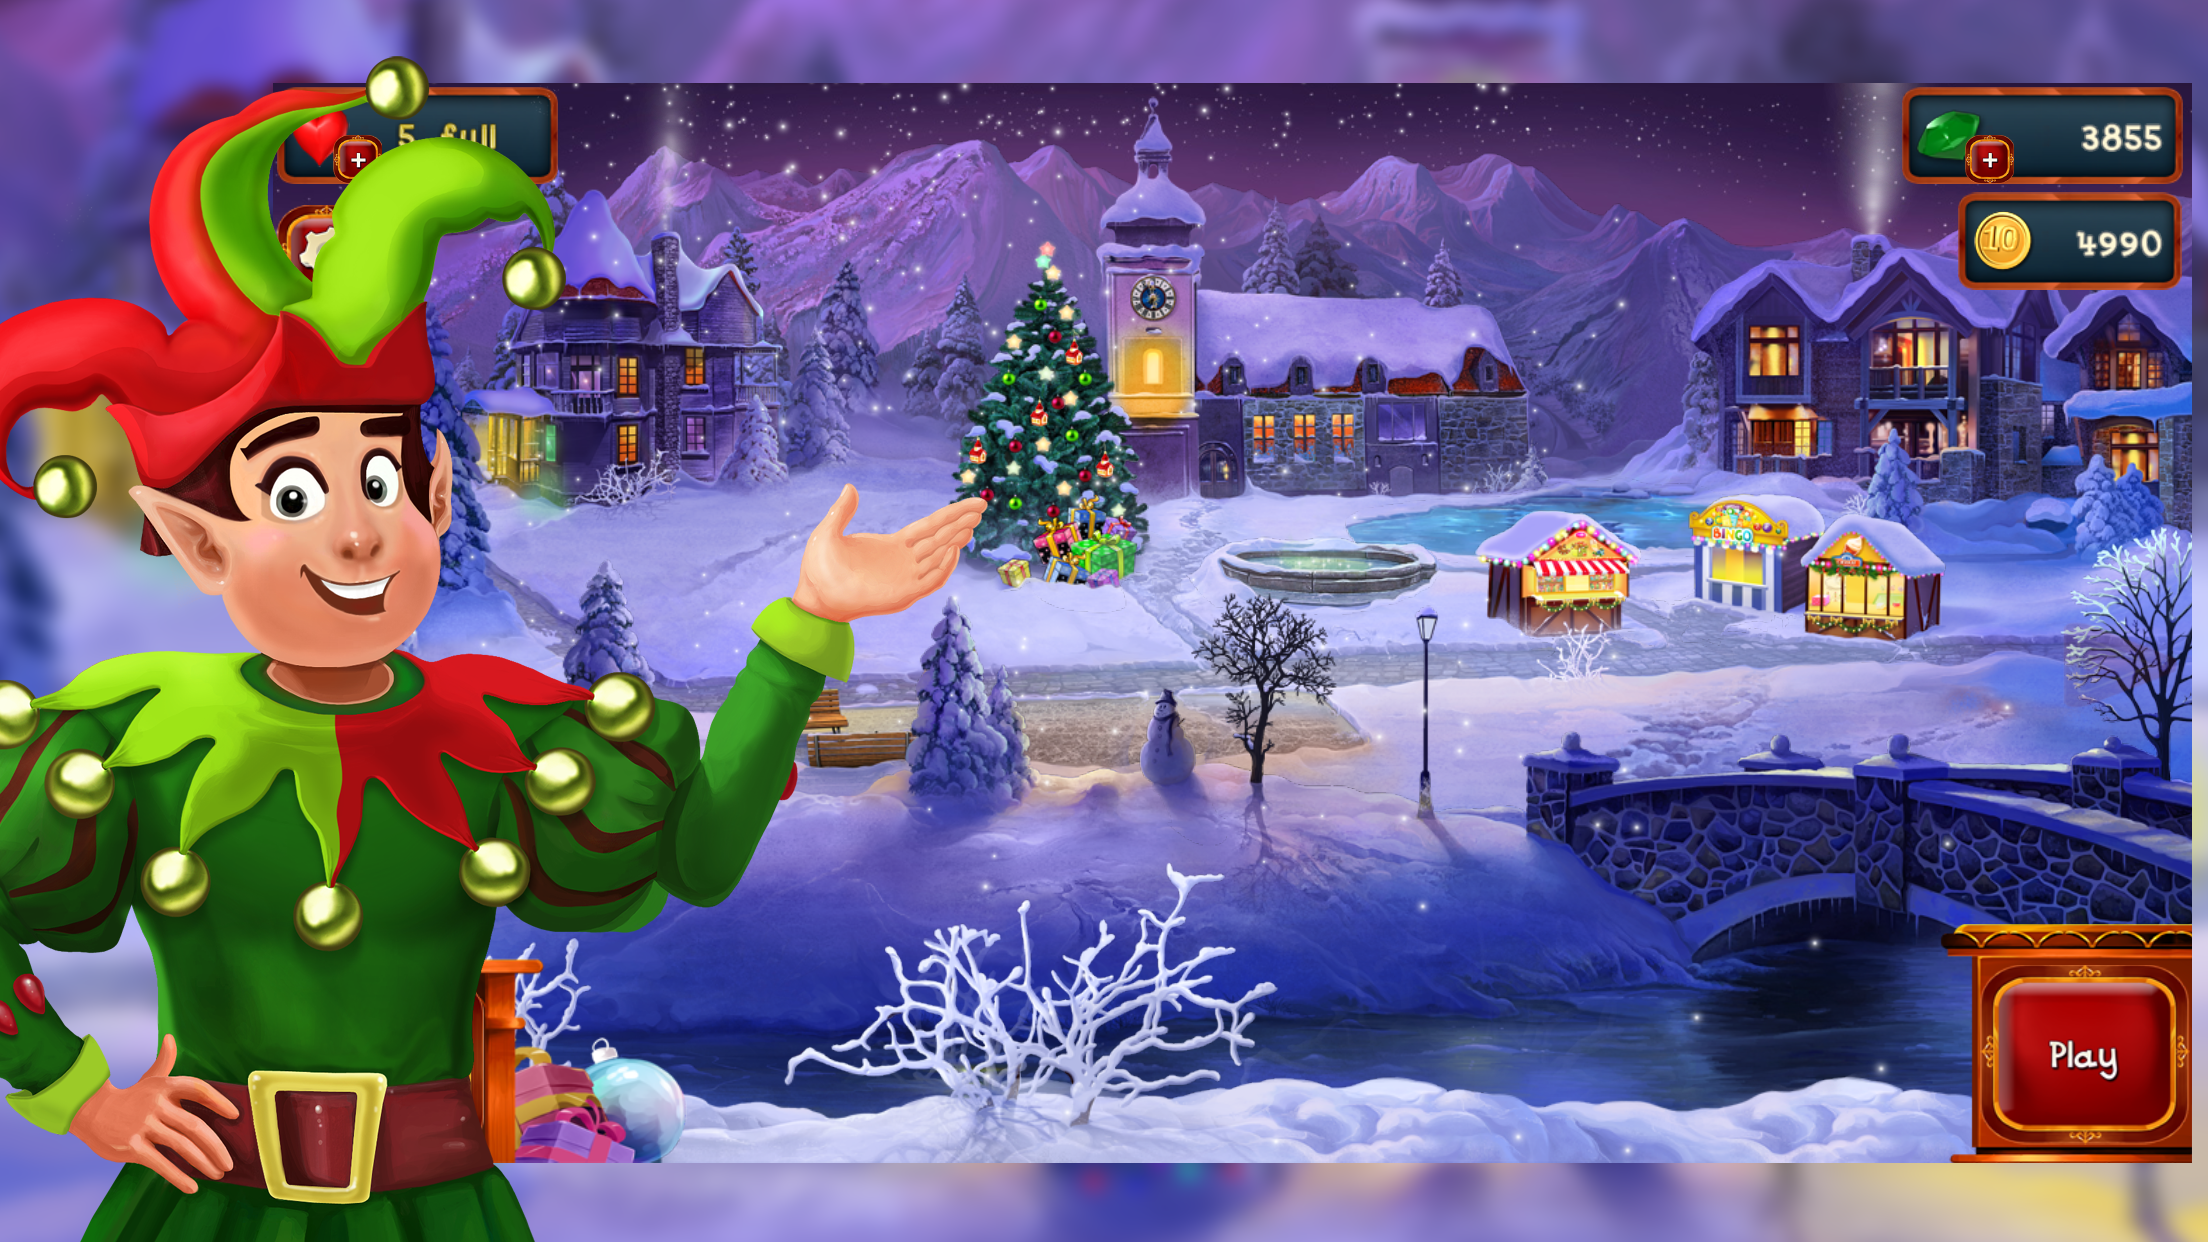 Christmas Mansion 3 for iOS - A New Puzzle Game Image